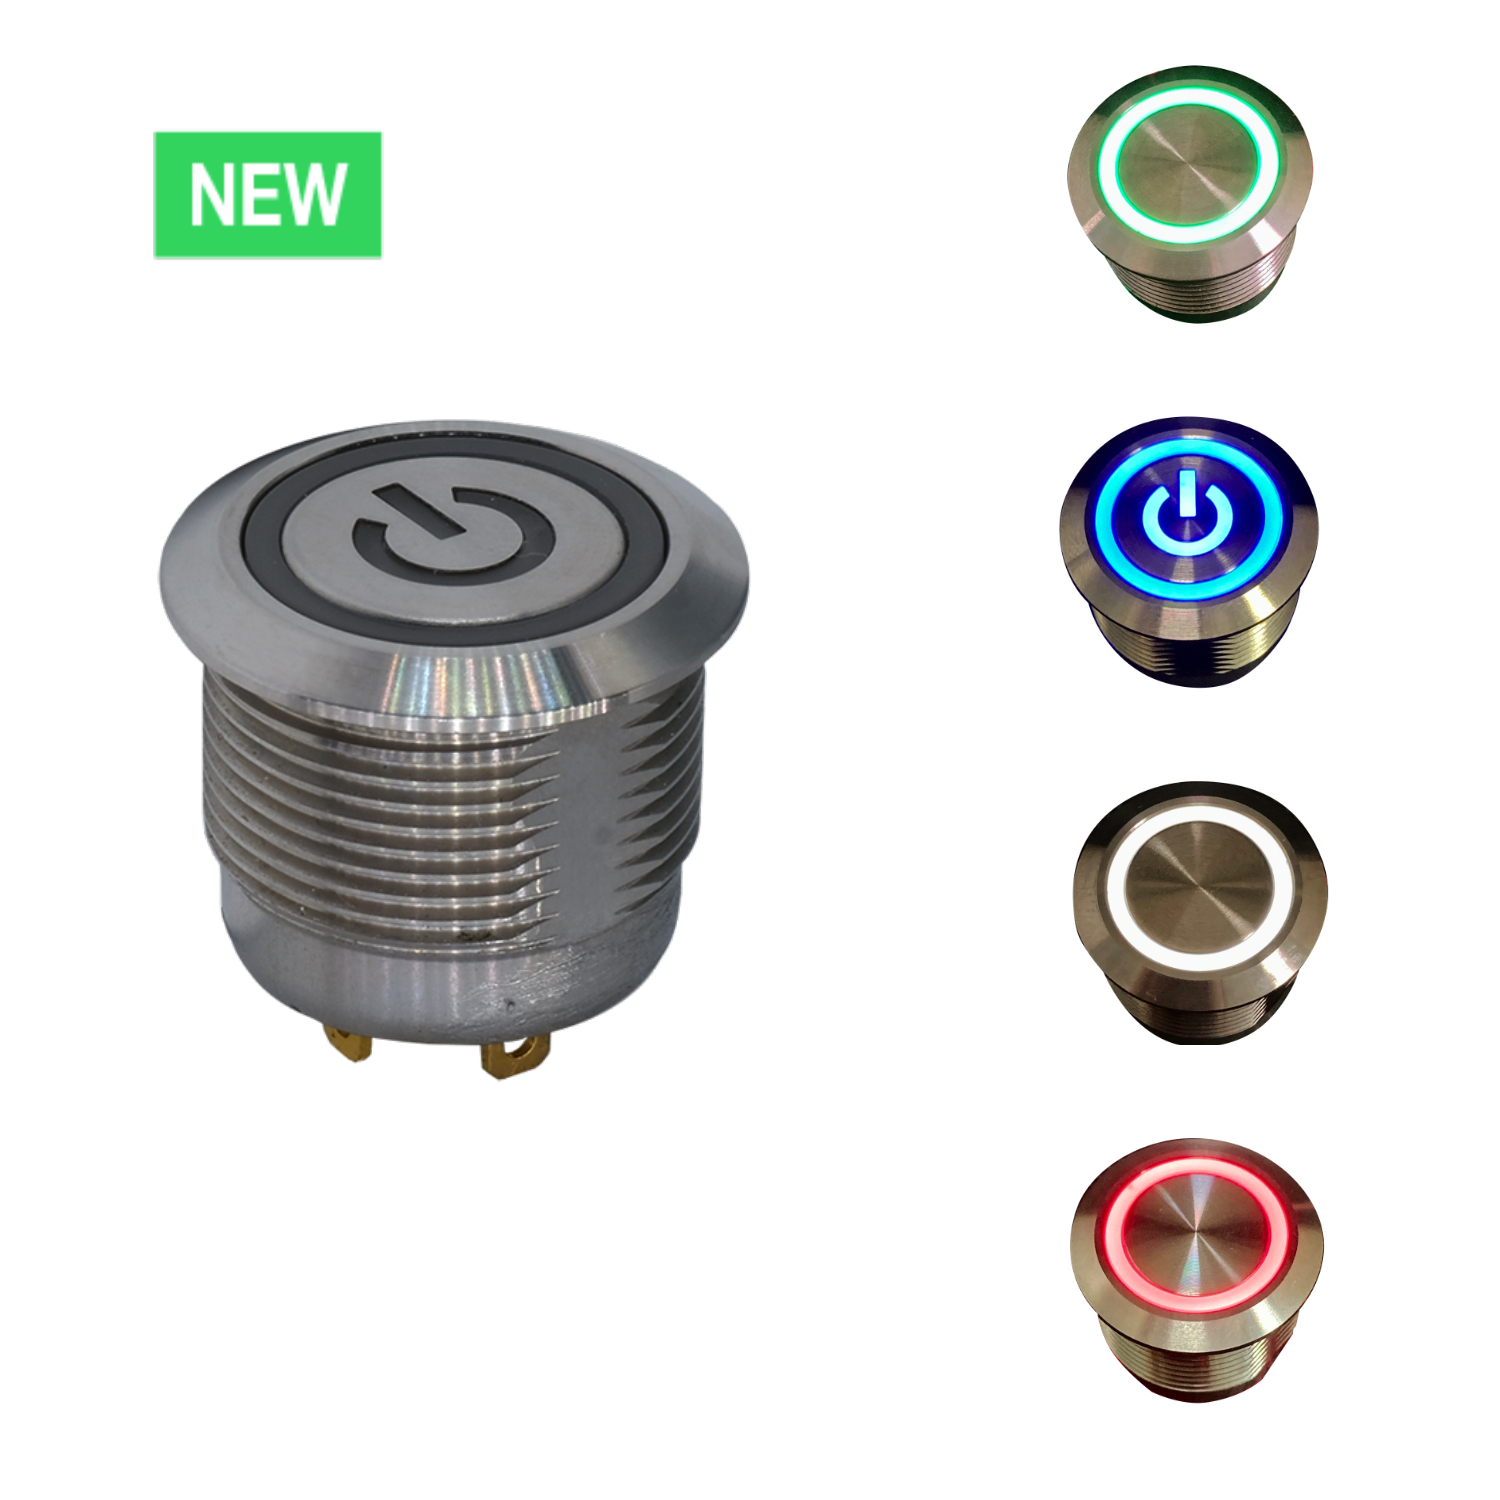 Anti-vandal Pushbutton Features up to 40% Space-Savings